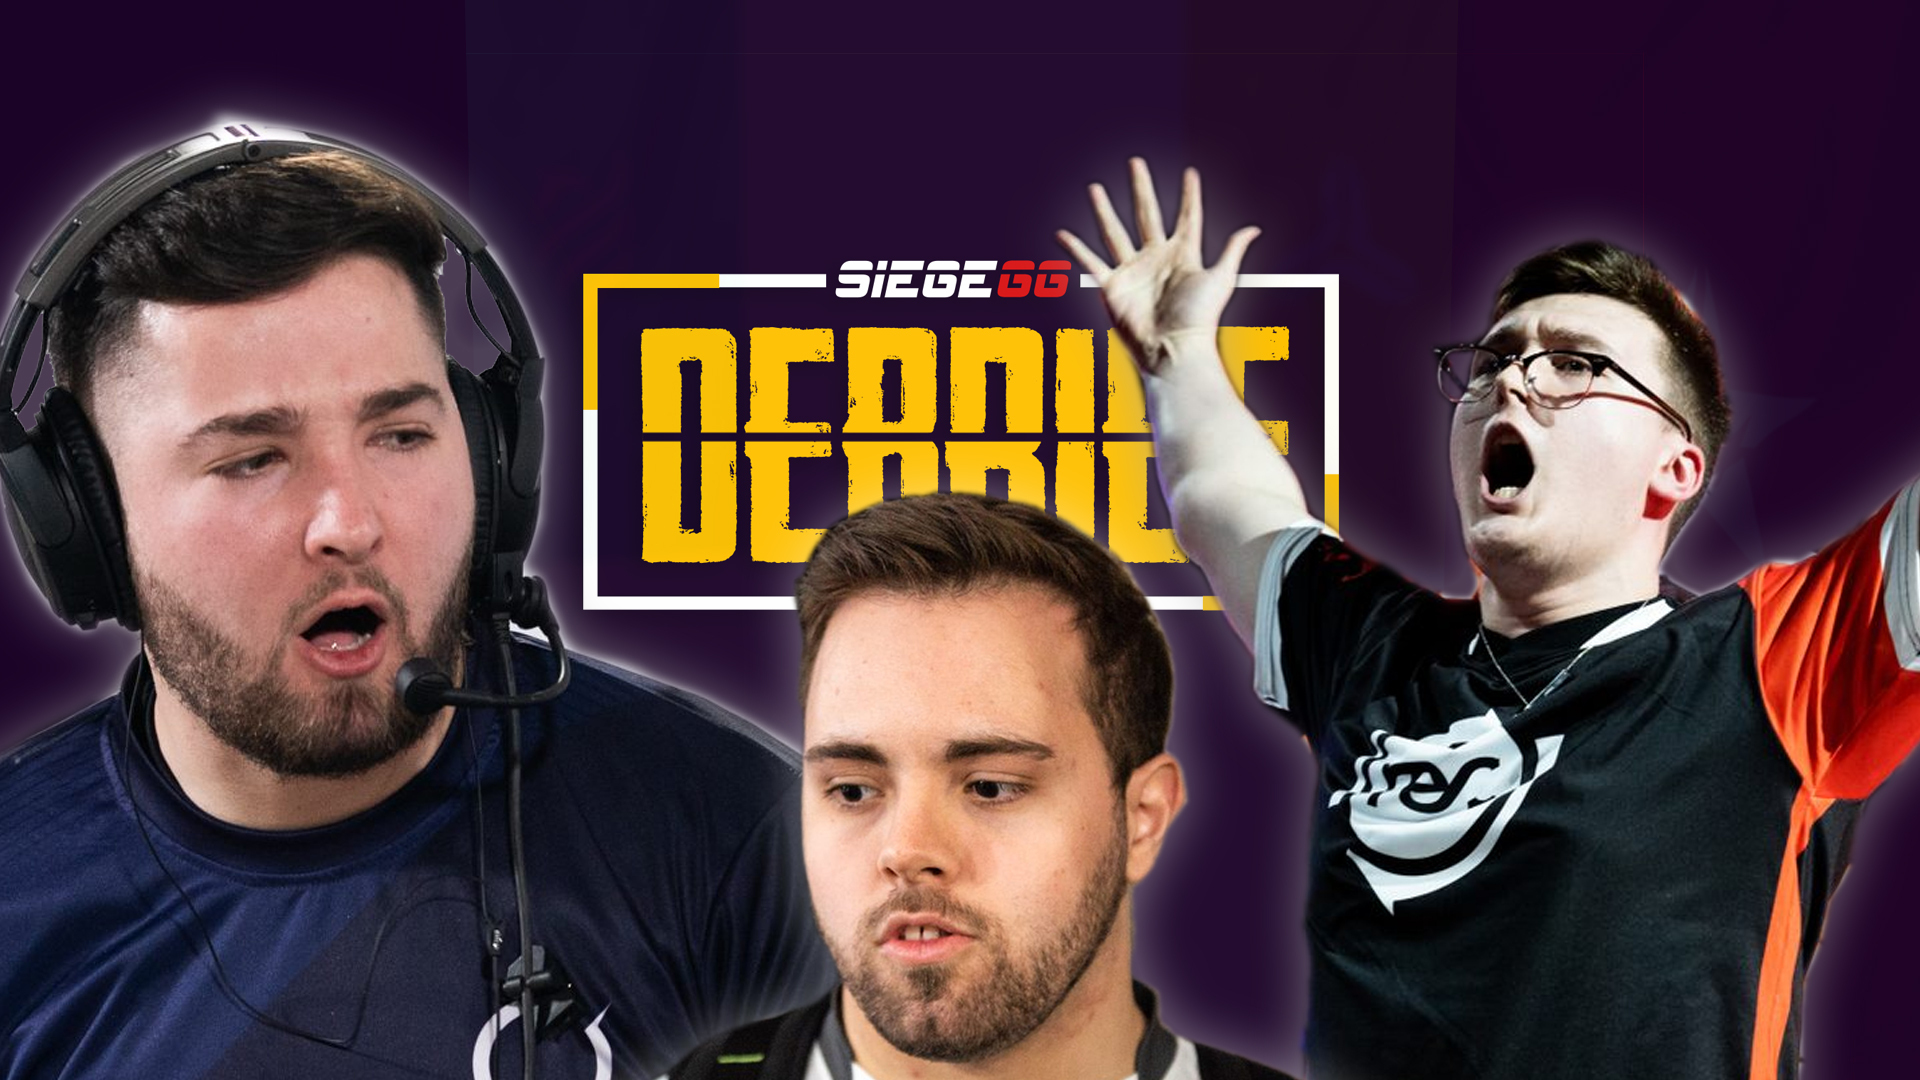 SiegeGG Debrief   SSG takes DOWN Canadian, BDS to the Major, and FOUR teams headed for RELEGATION!